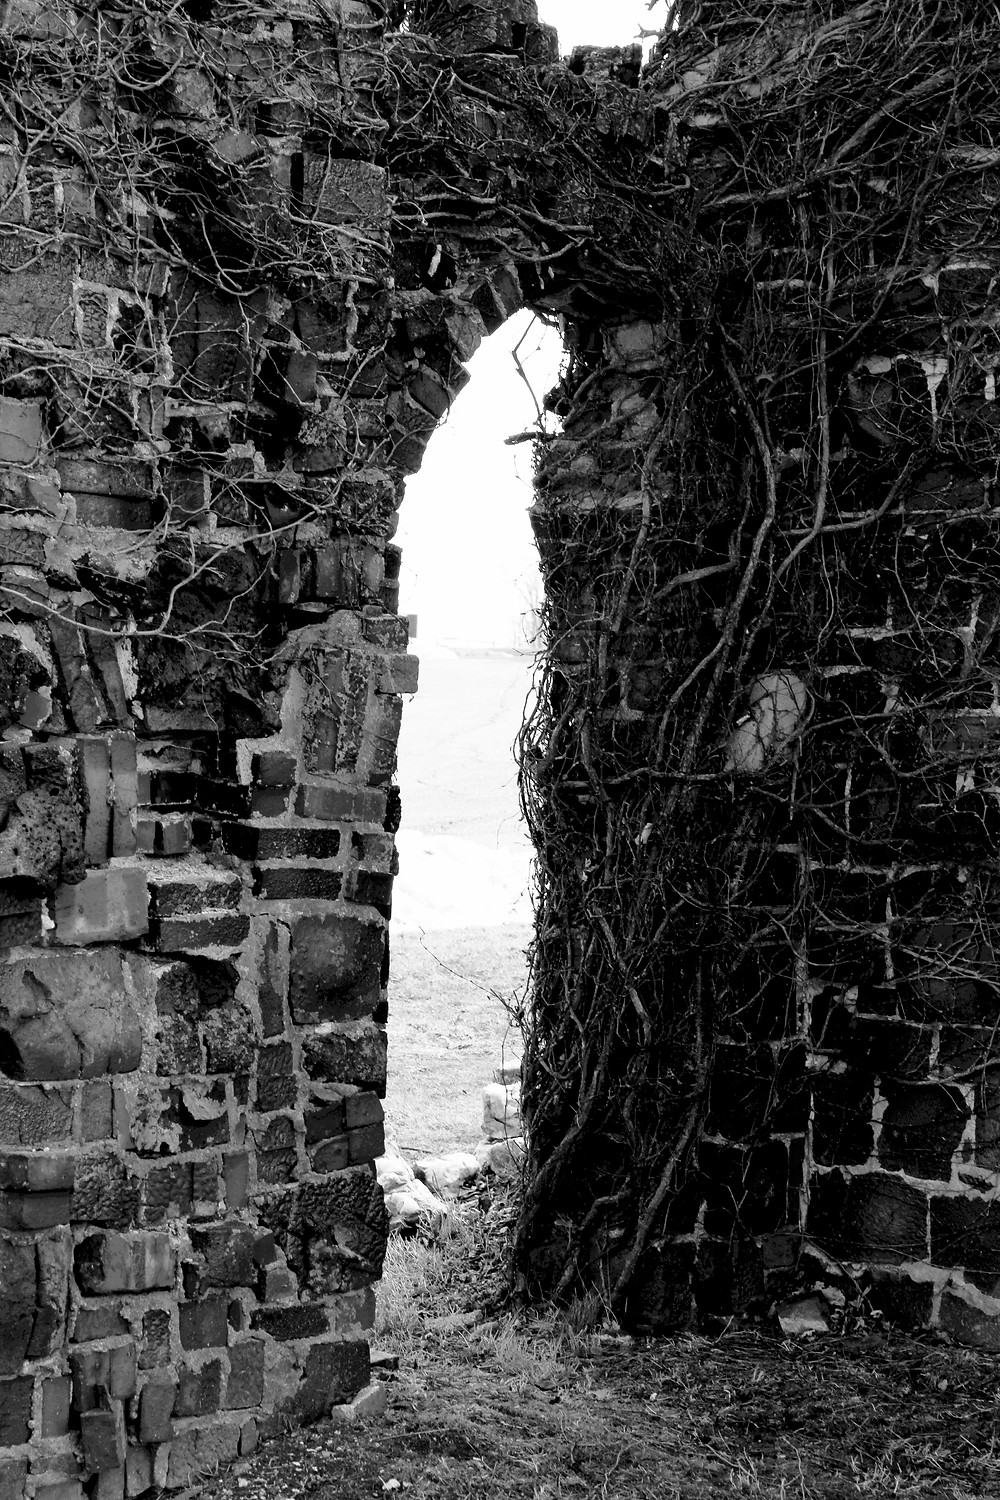 Brick archway covered in vines and branches in black and white